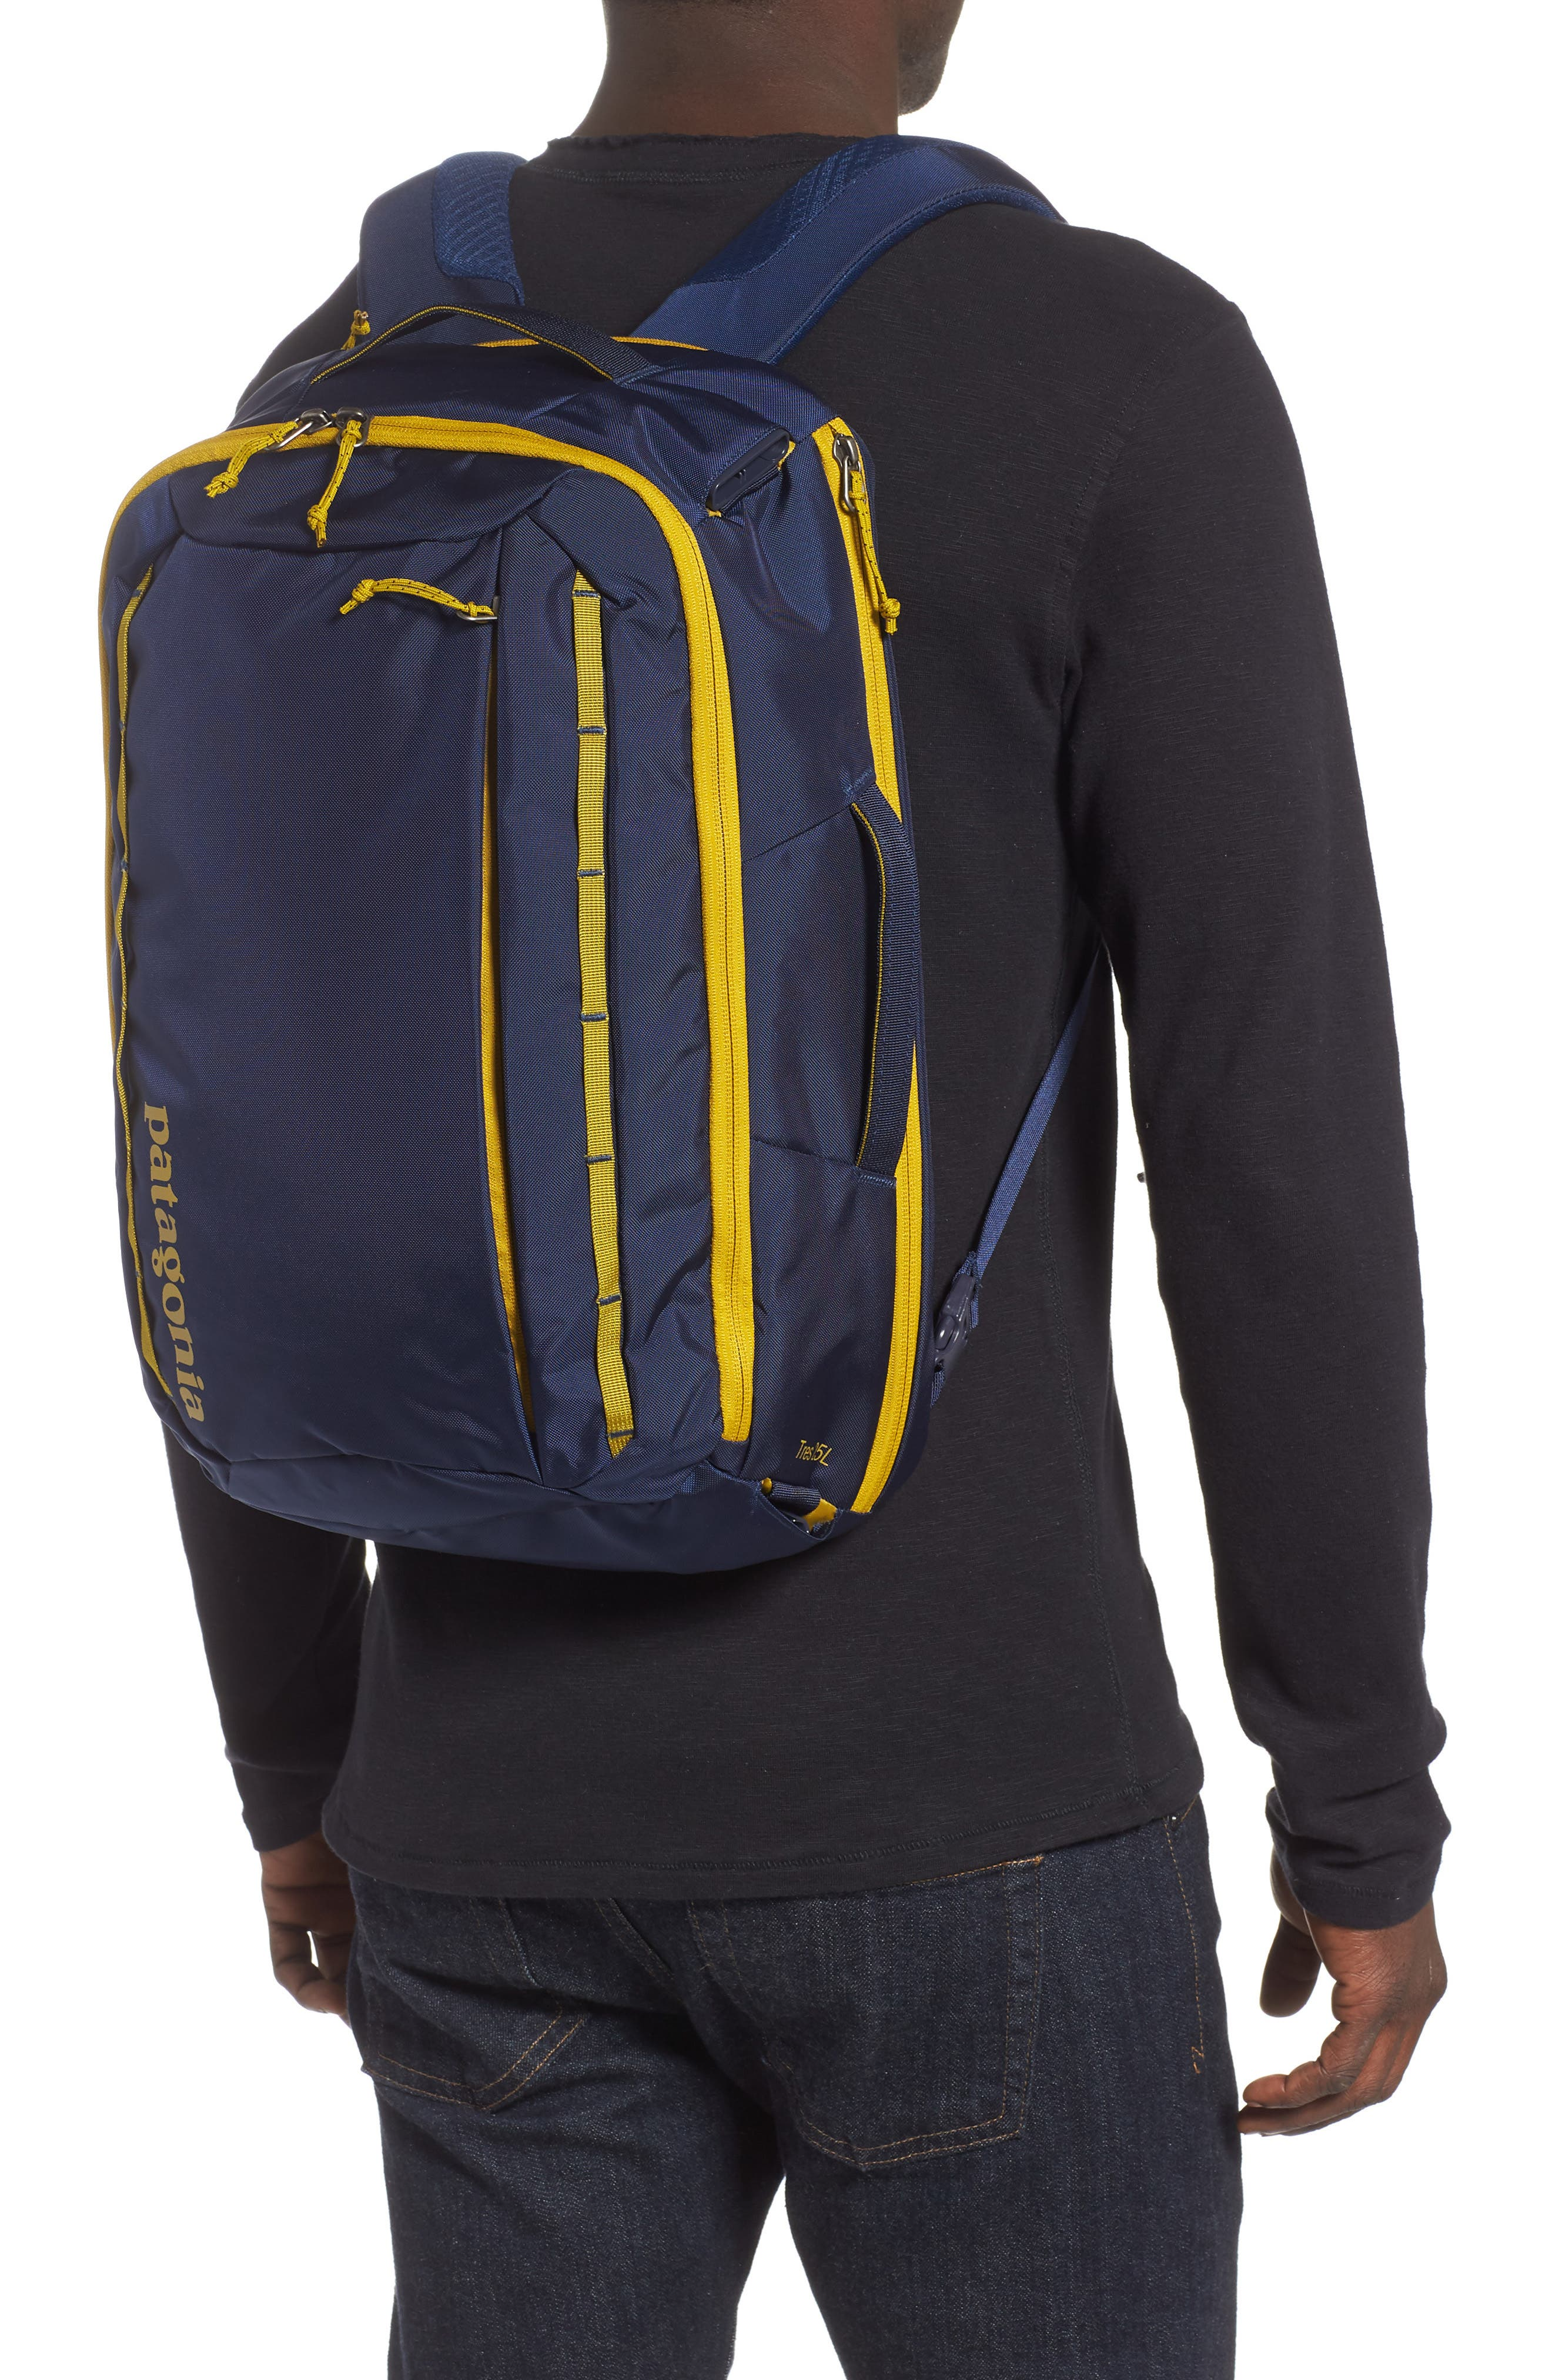 PATAGONIA,                             Tres 25-Liter Convertible Backpack,                             Alternate thumbnail 2, color,                             CLASSIC NAVY